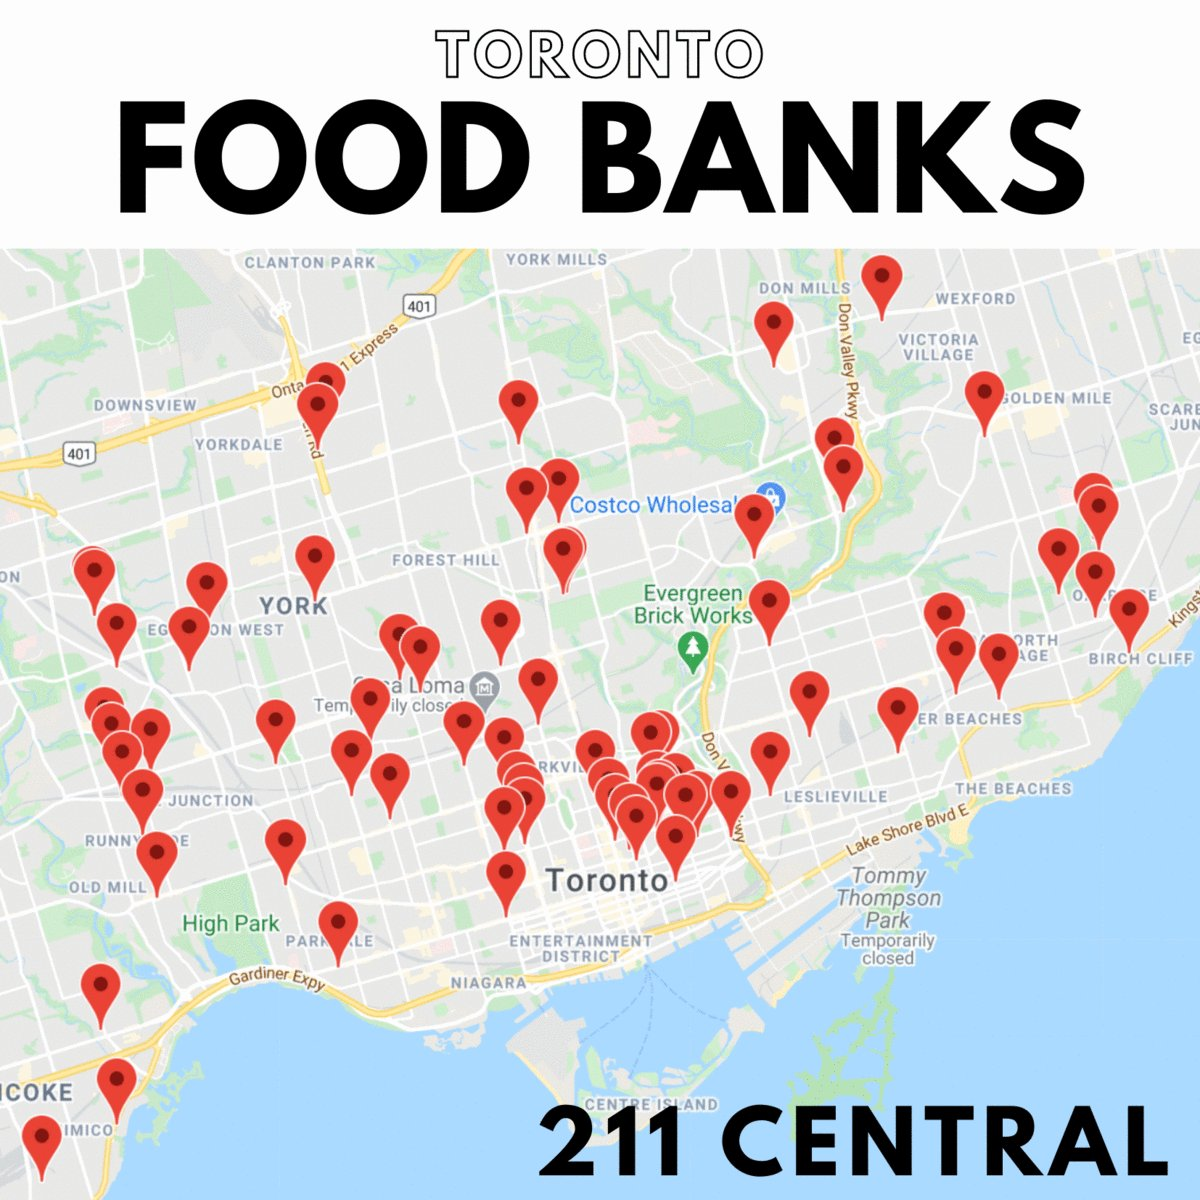 For those who need additional support right now, there's help available.  Info on food programs and food banks across Toronto are available at @211Central: .   For more City resources and support: